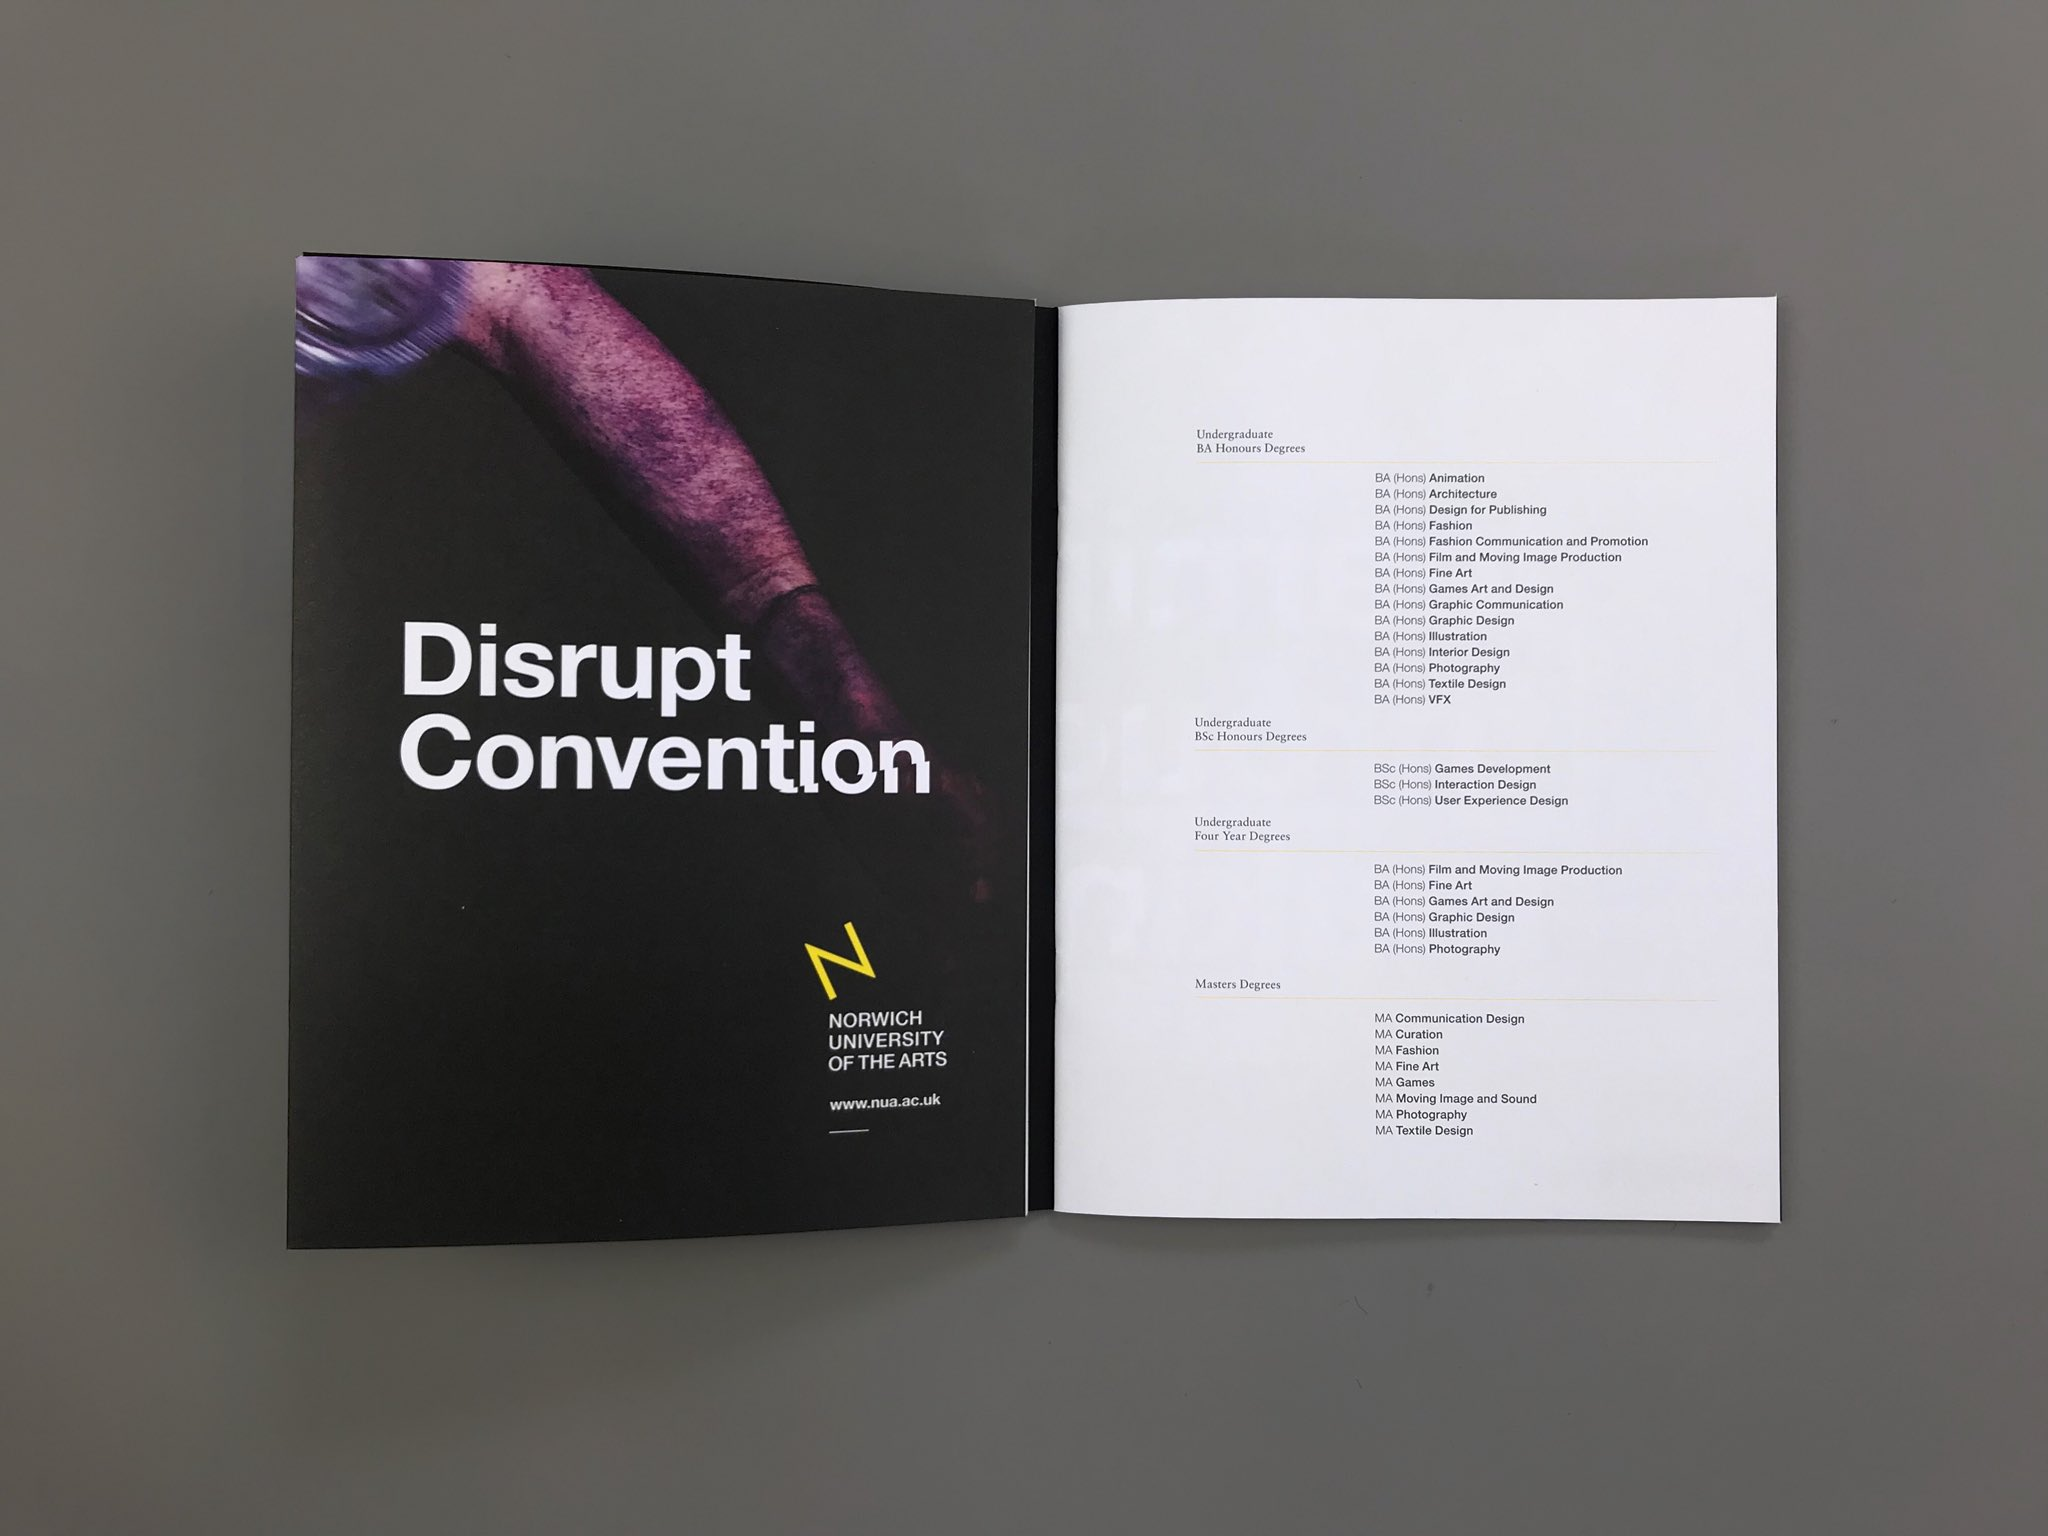 Ark On Twitter We Ve Designed A New Series Of Nua International Prospectuses With Poster Dust Jackets Inner Brochure Printed On Black Colorplanpapers With Yellow Foil Https T Co Gaus4zxo0s